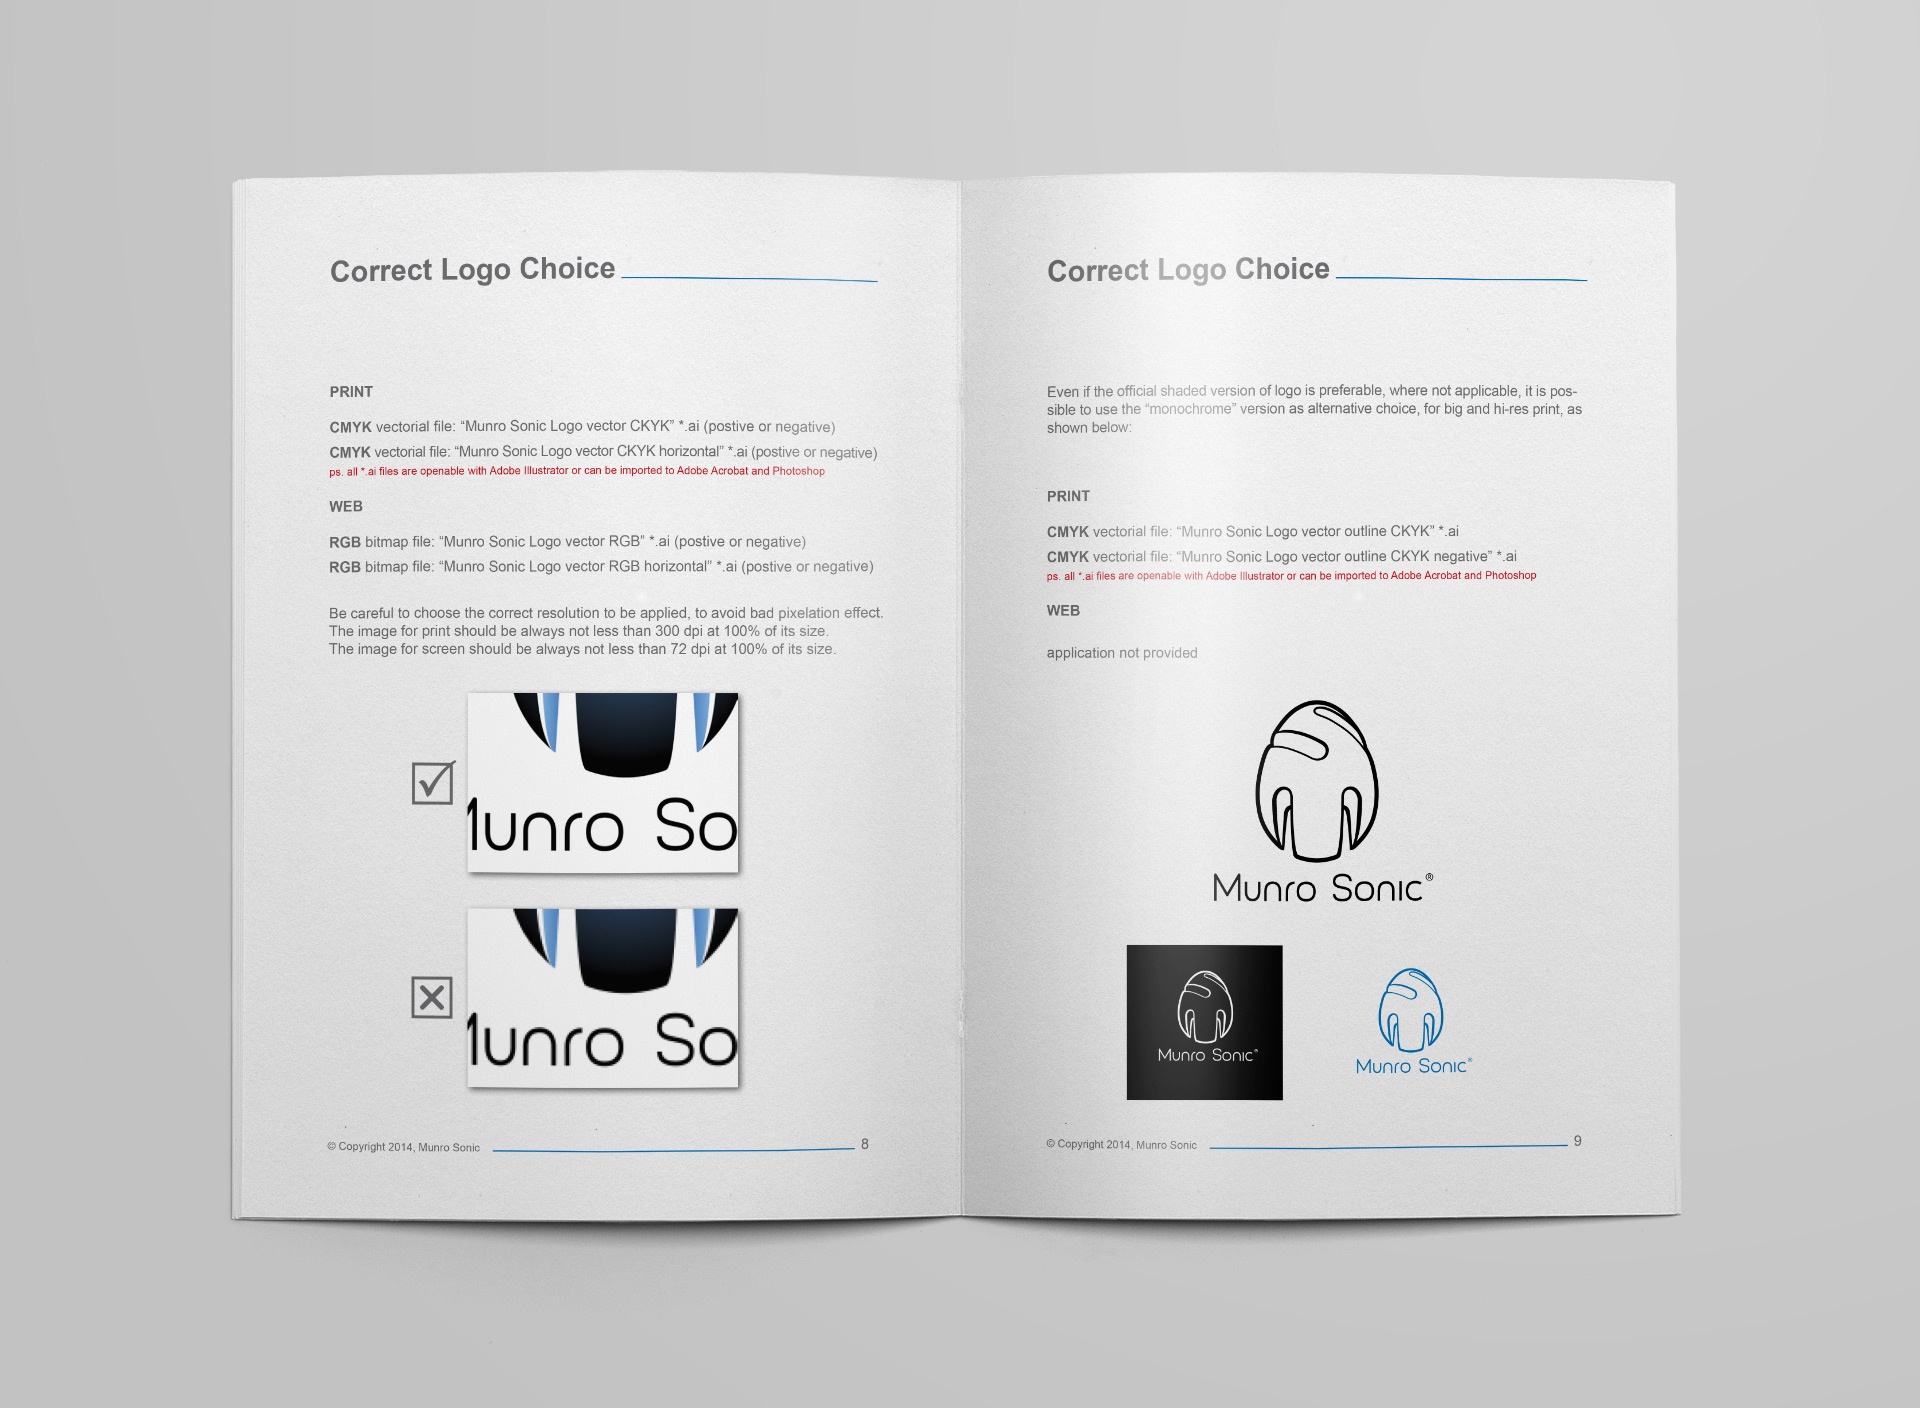 Munro-Sonic-guidelines-08-09